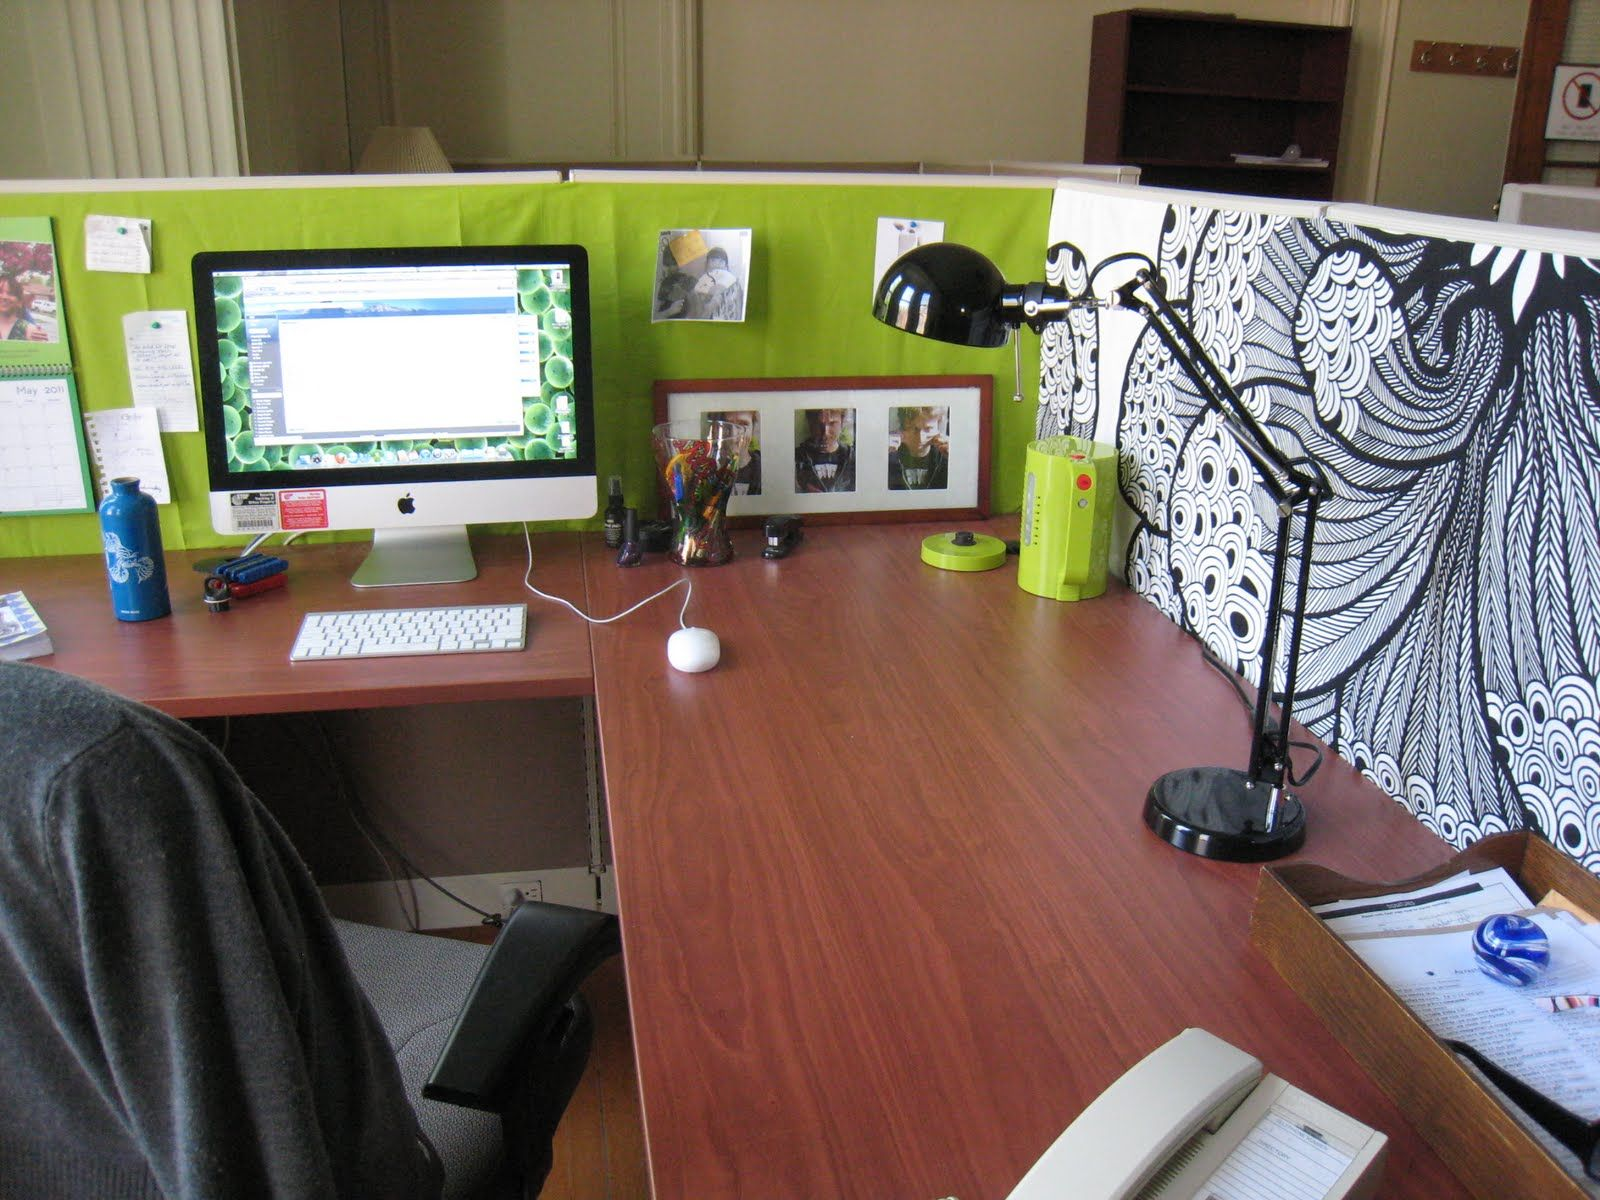 Groovy 17 Best Images About Cubicle Decor On Pinterest Cute Cubicle Largest Home Design Picture Inspirations Pitcheantrous